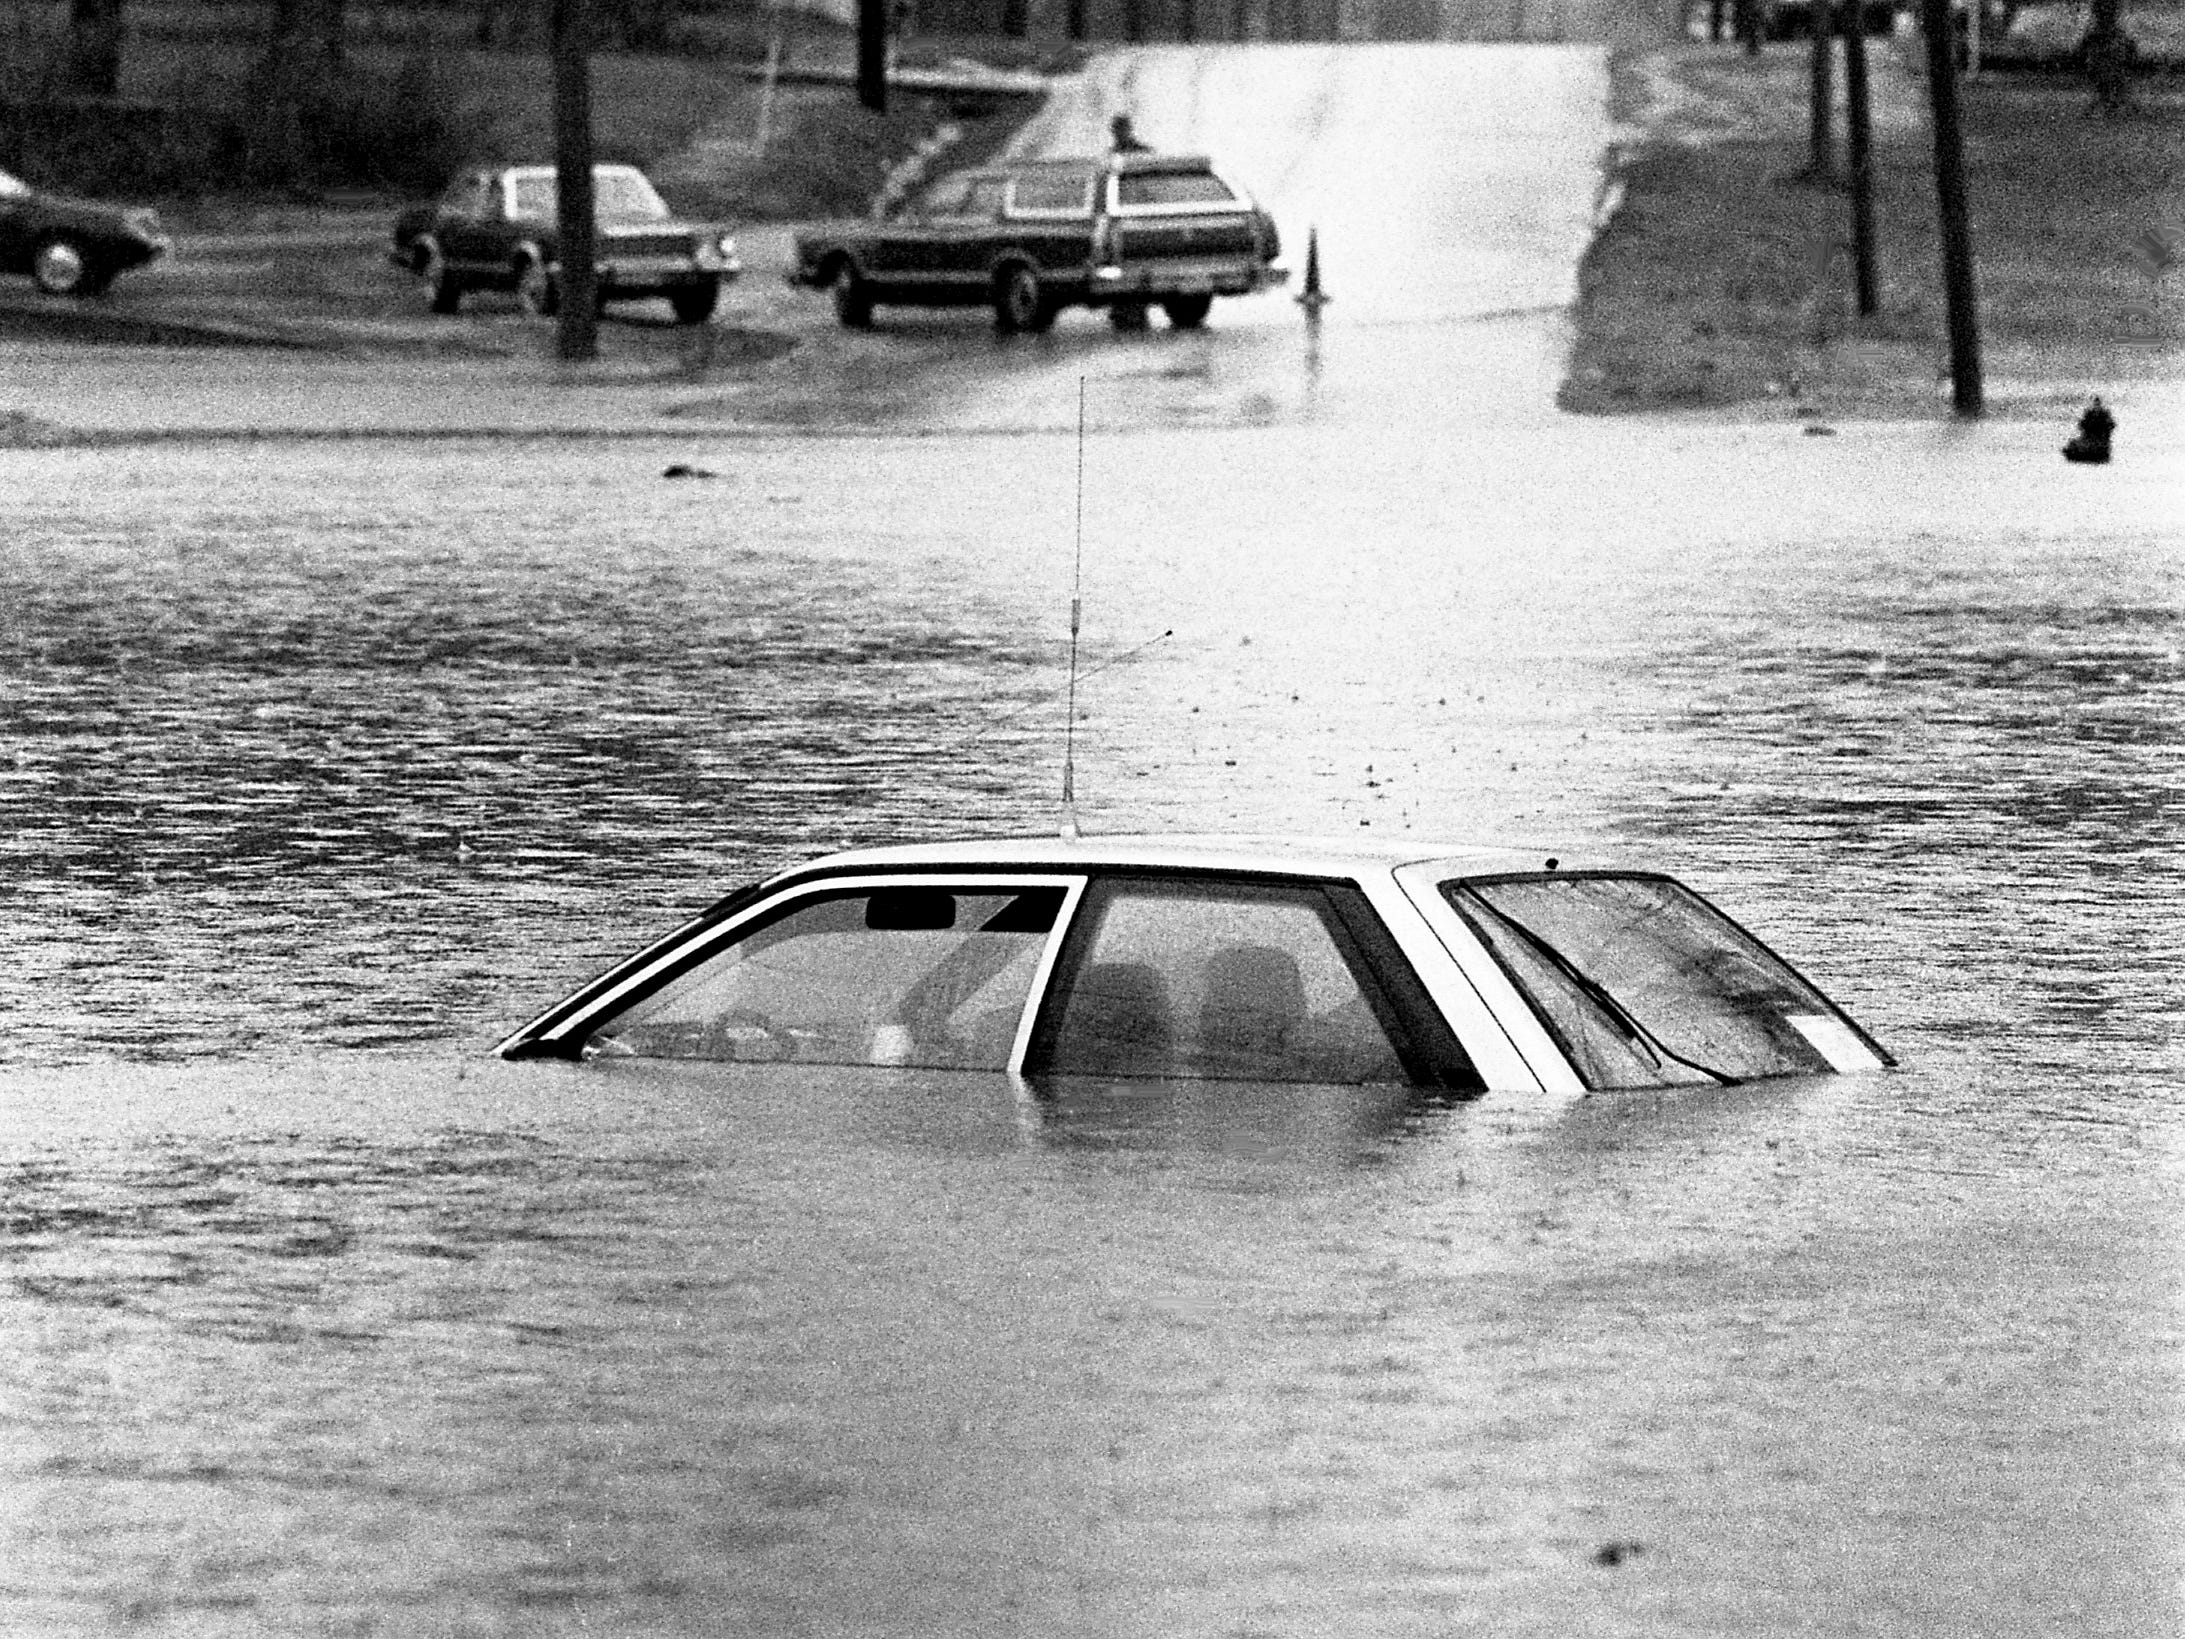 An abandoned car sits submerged in floodwaters near Humana Hospital McFarland in Lebanon on Feb. 14, 1989, after a storm dumped nearly 6 inches of rain on Wilson County.